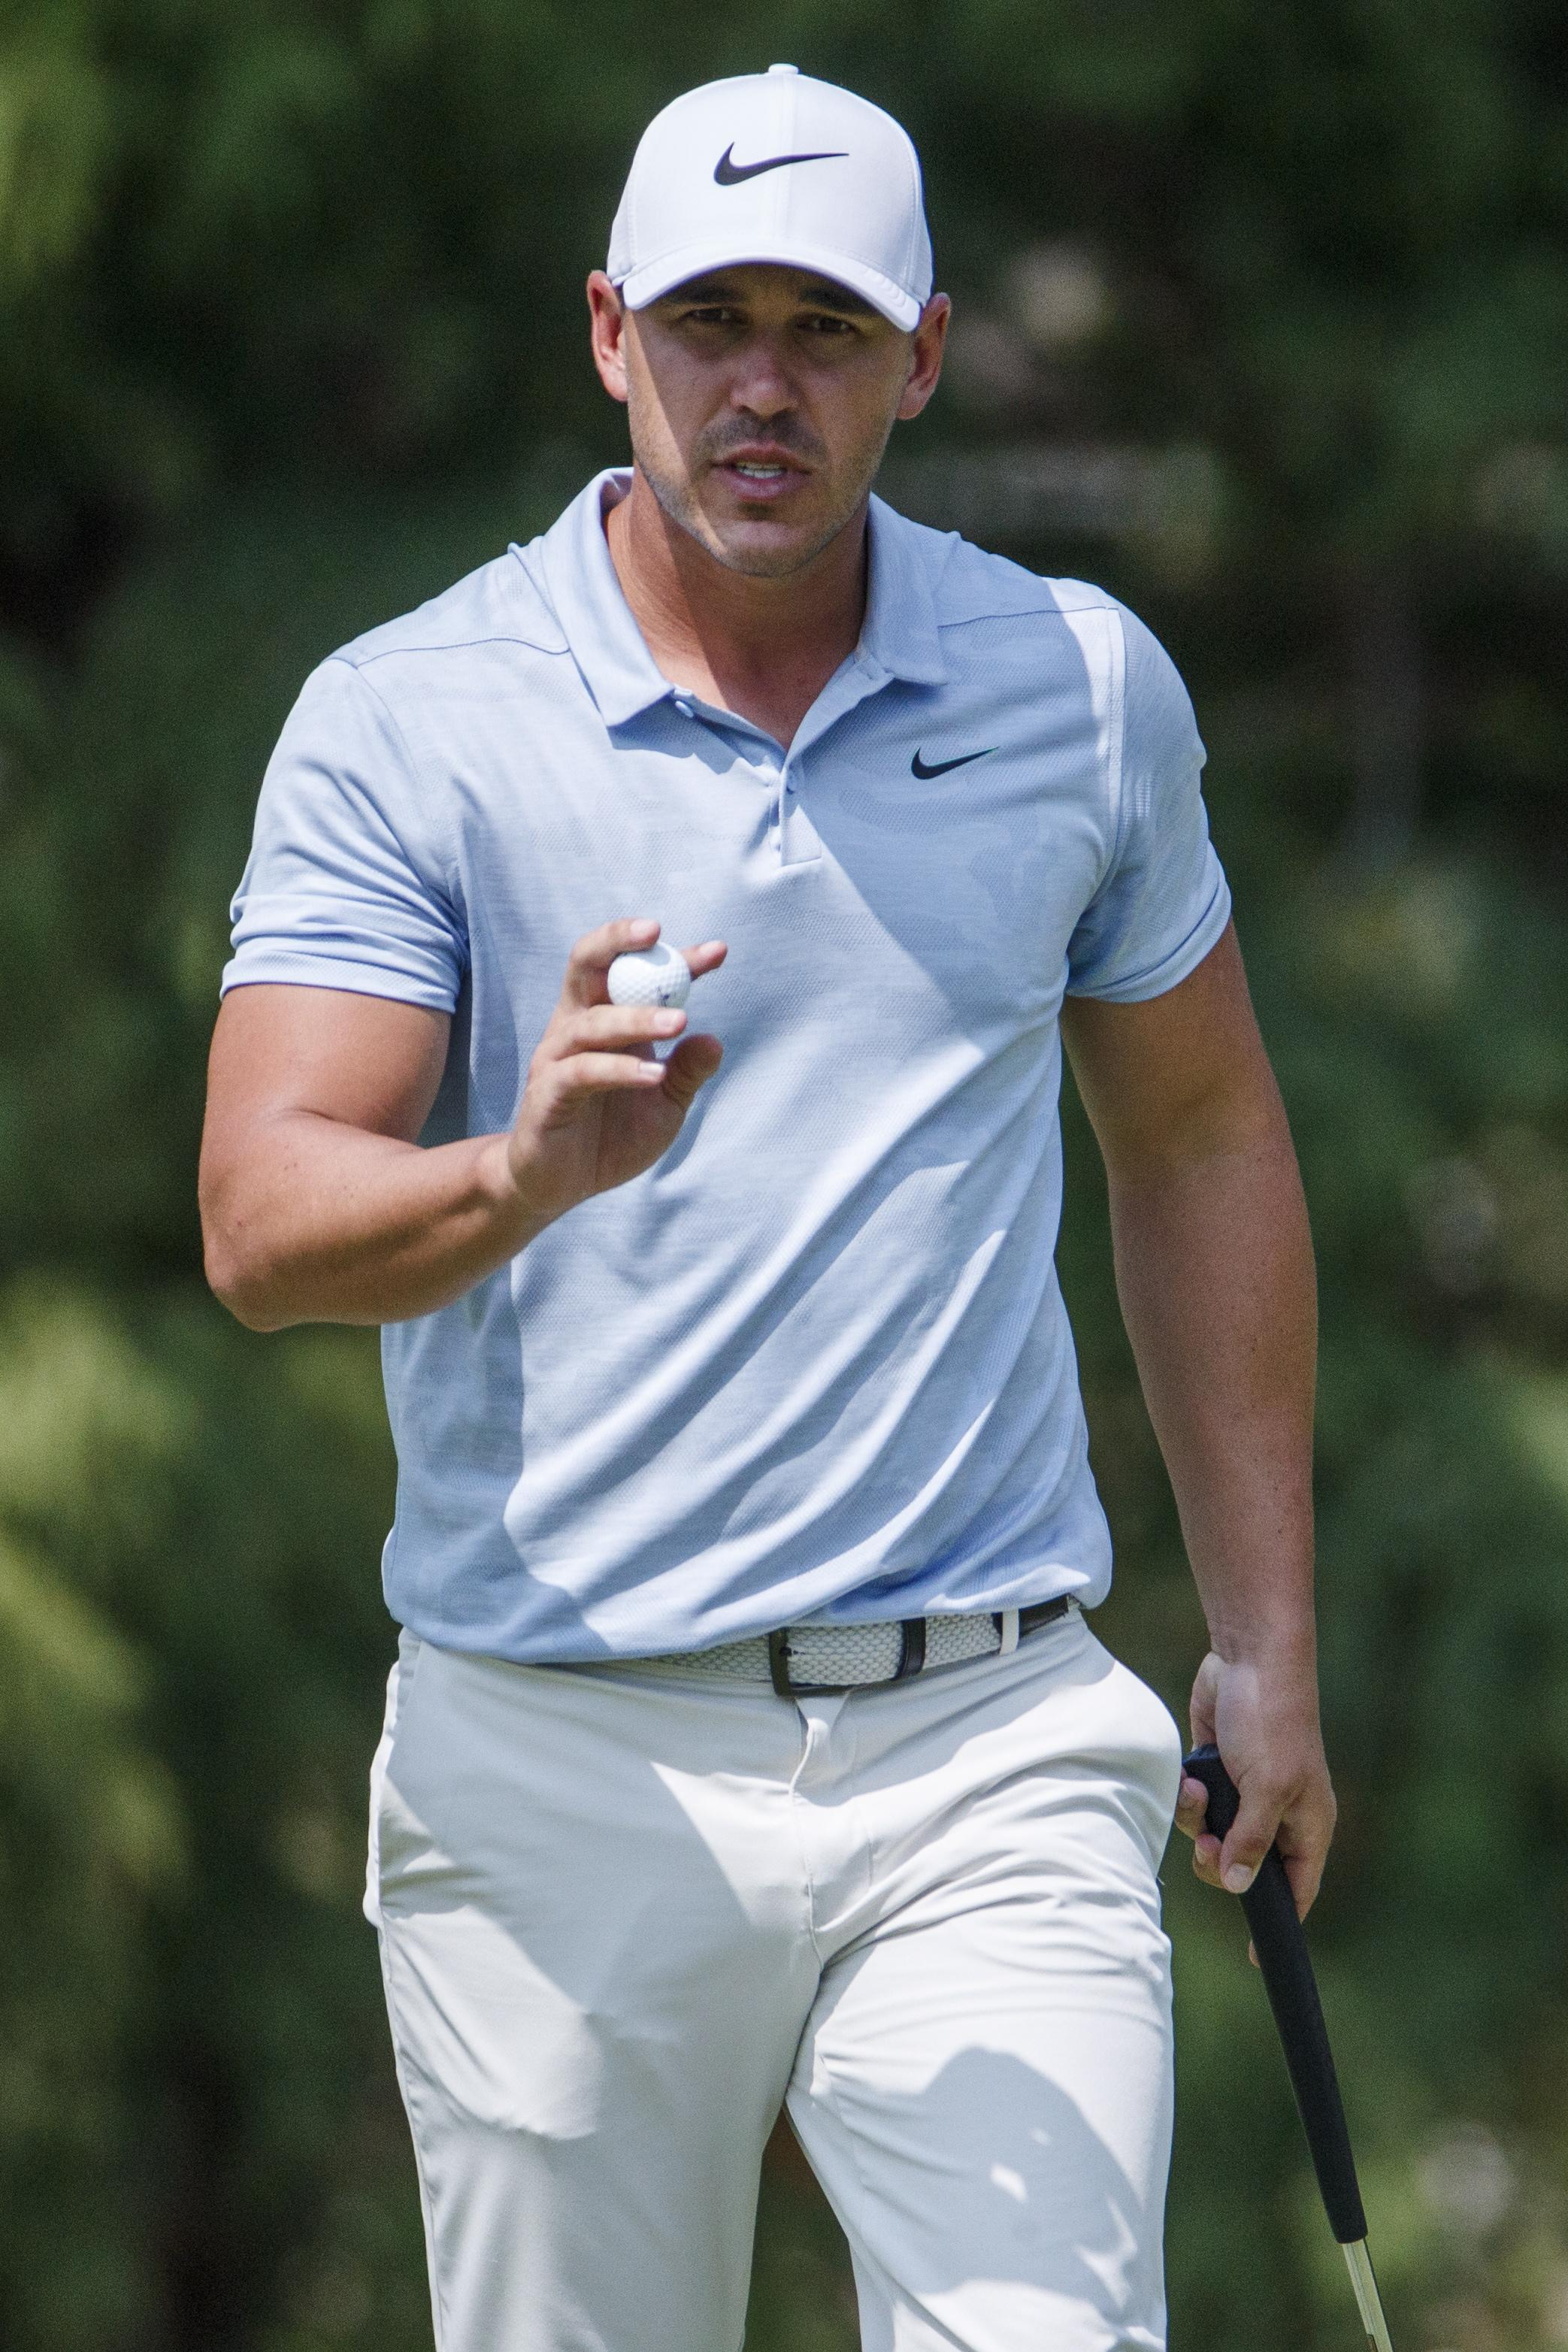 Brooks Koepka kept his cool at the top of the leaderboard